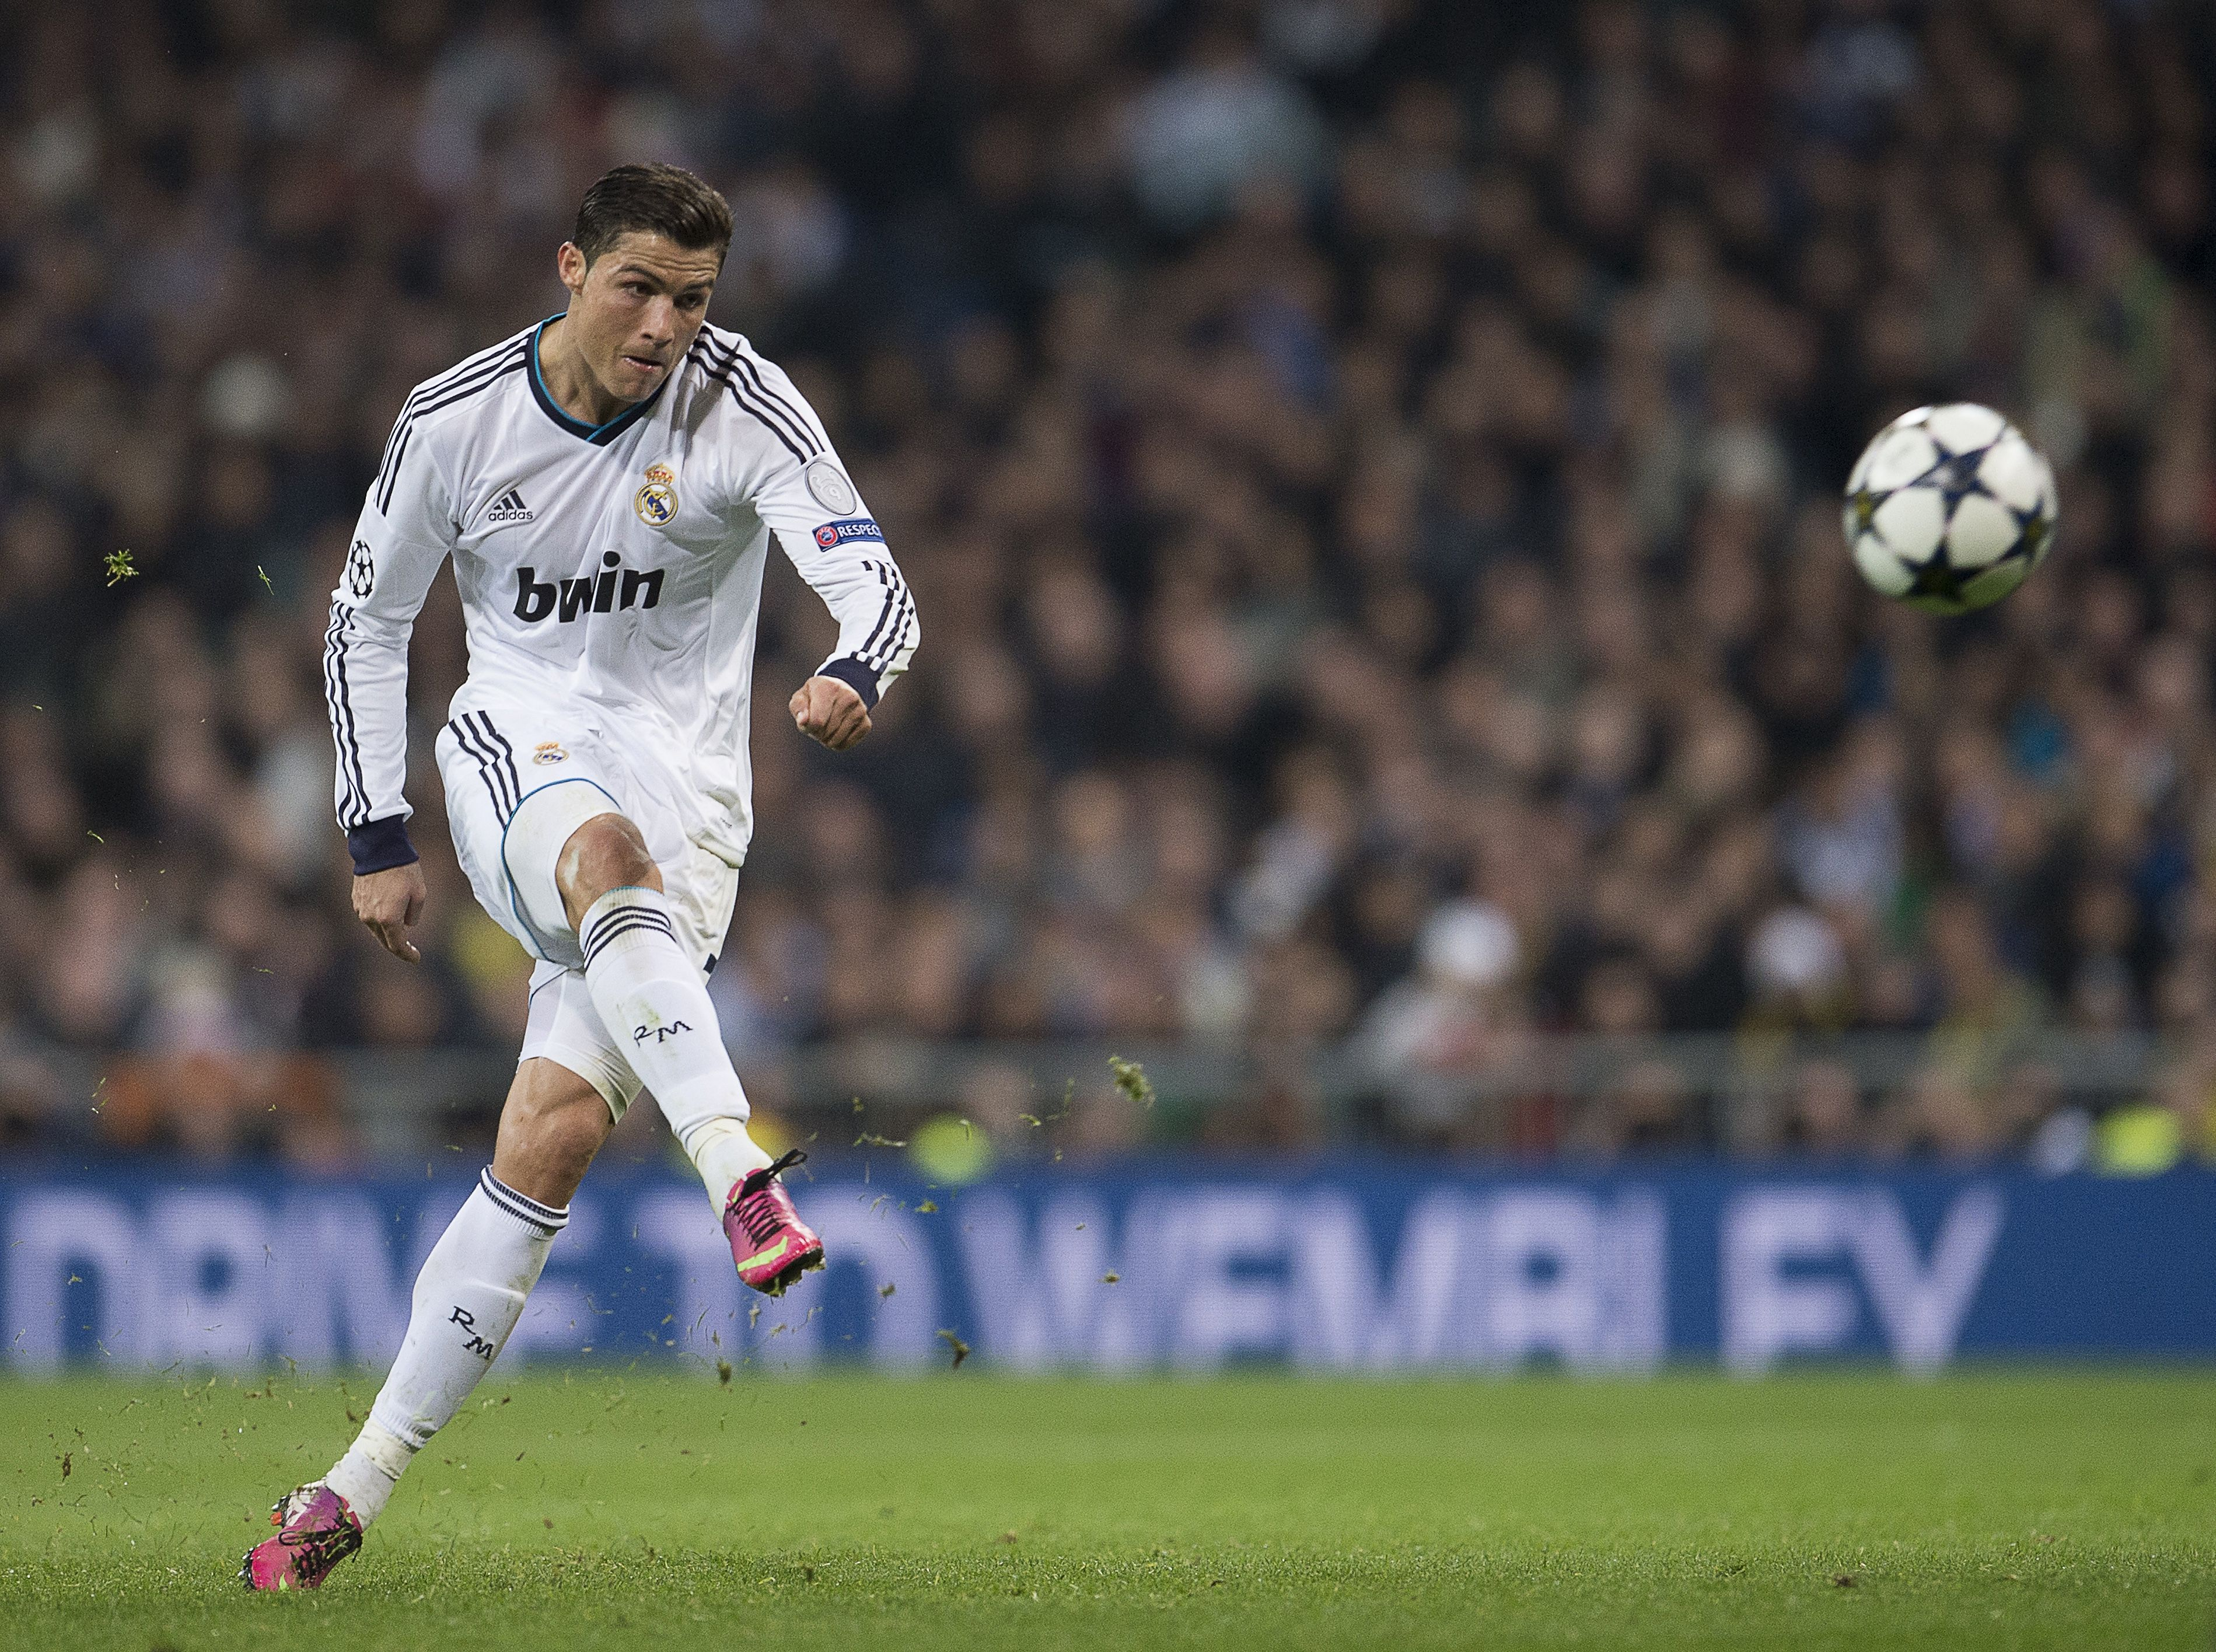 Ronaldo Free Kick Wallpaper For Iphone APL (With images